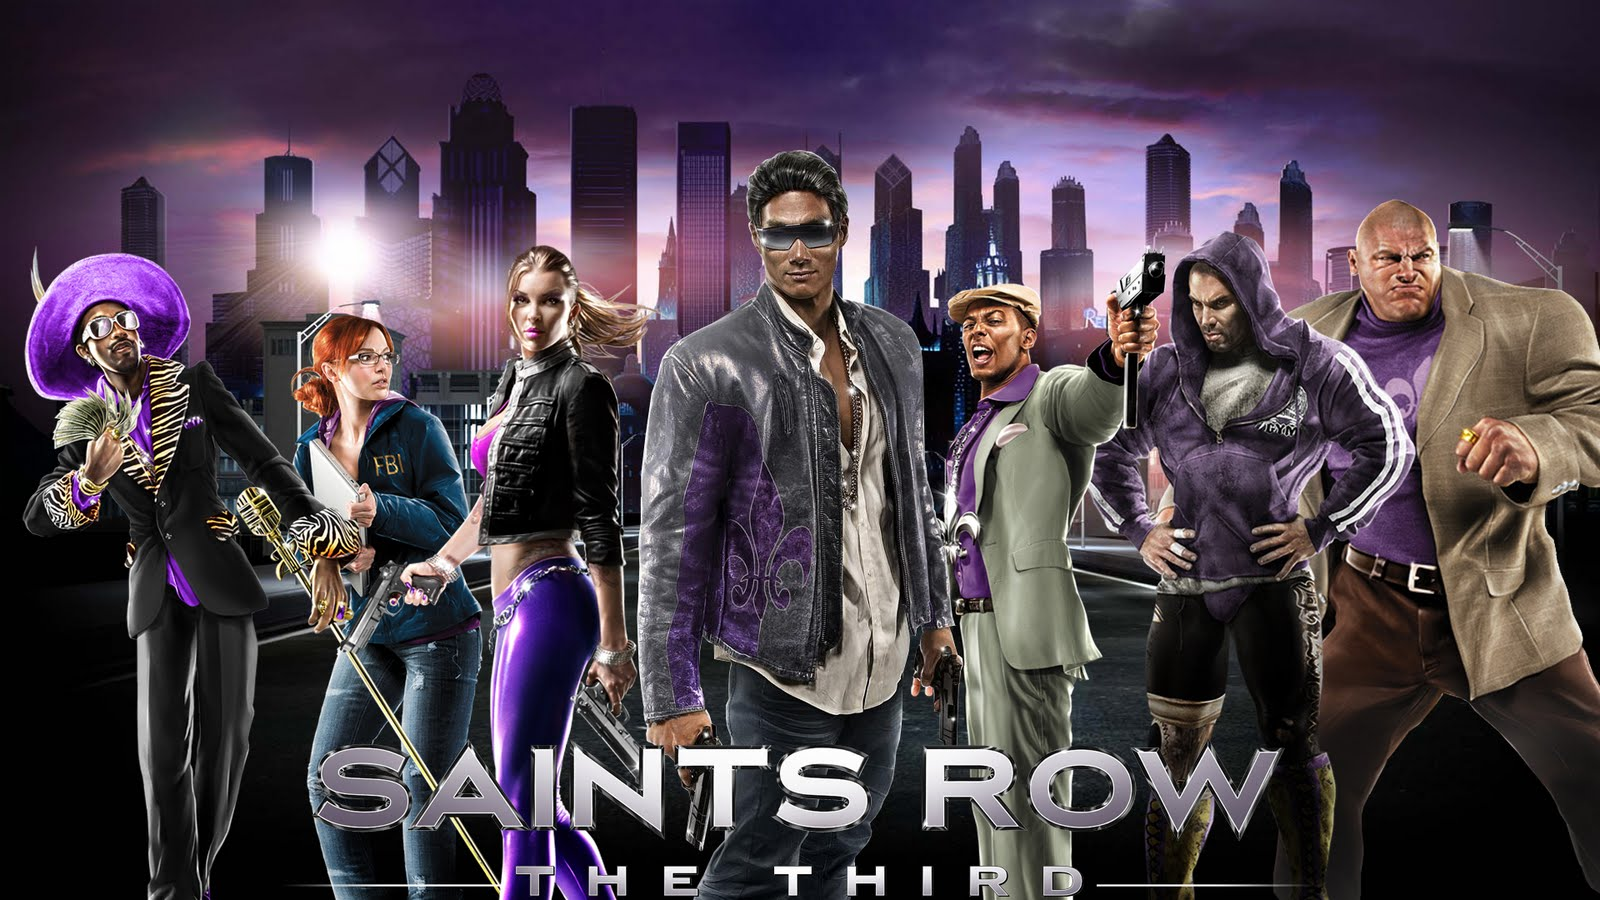 Saints Row The Third (3) % 100 Türkçe Yama